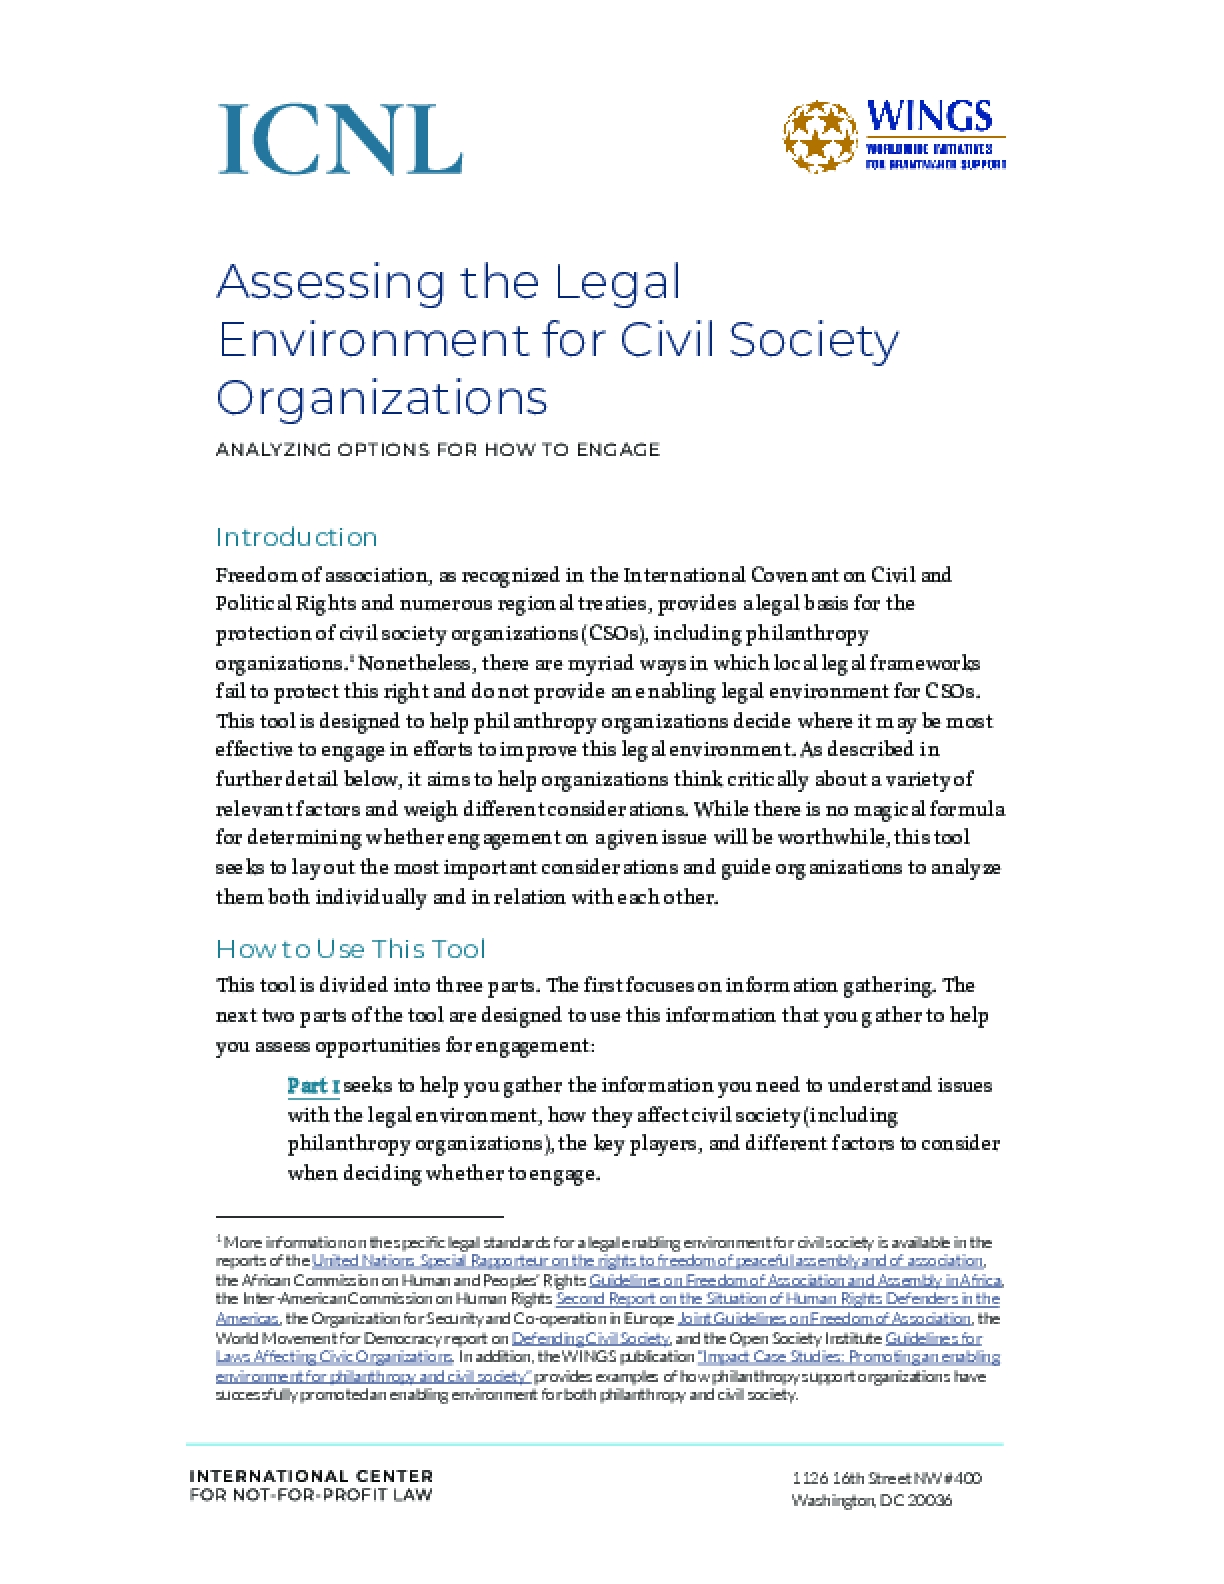 Assessing the Legal Environment for Civil Society Organizations